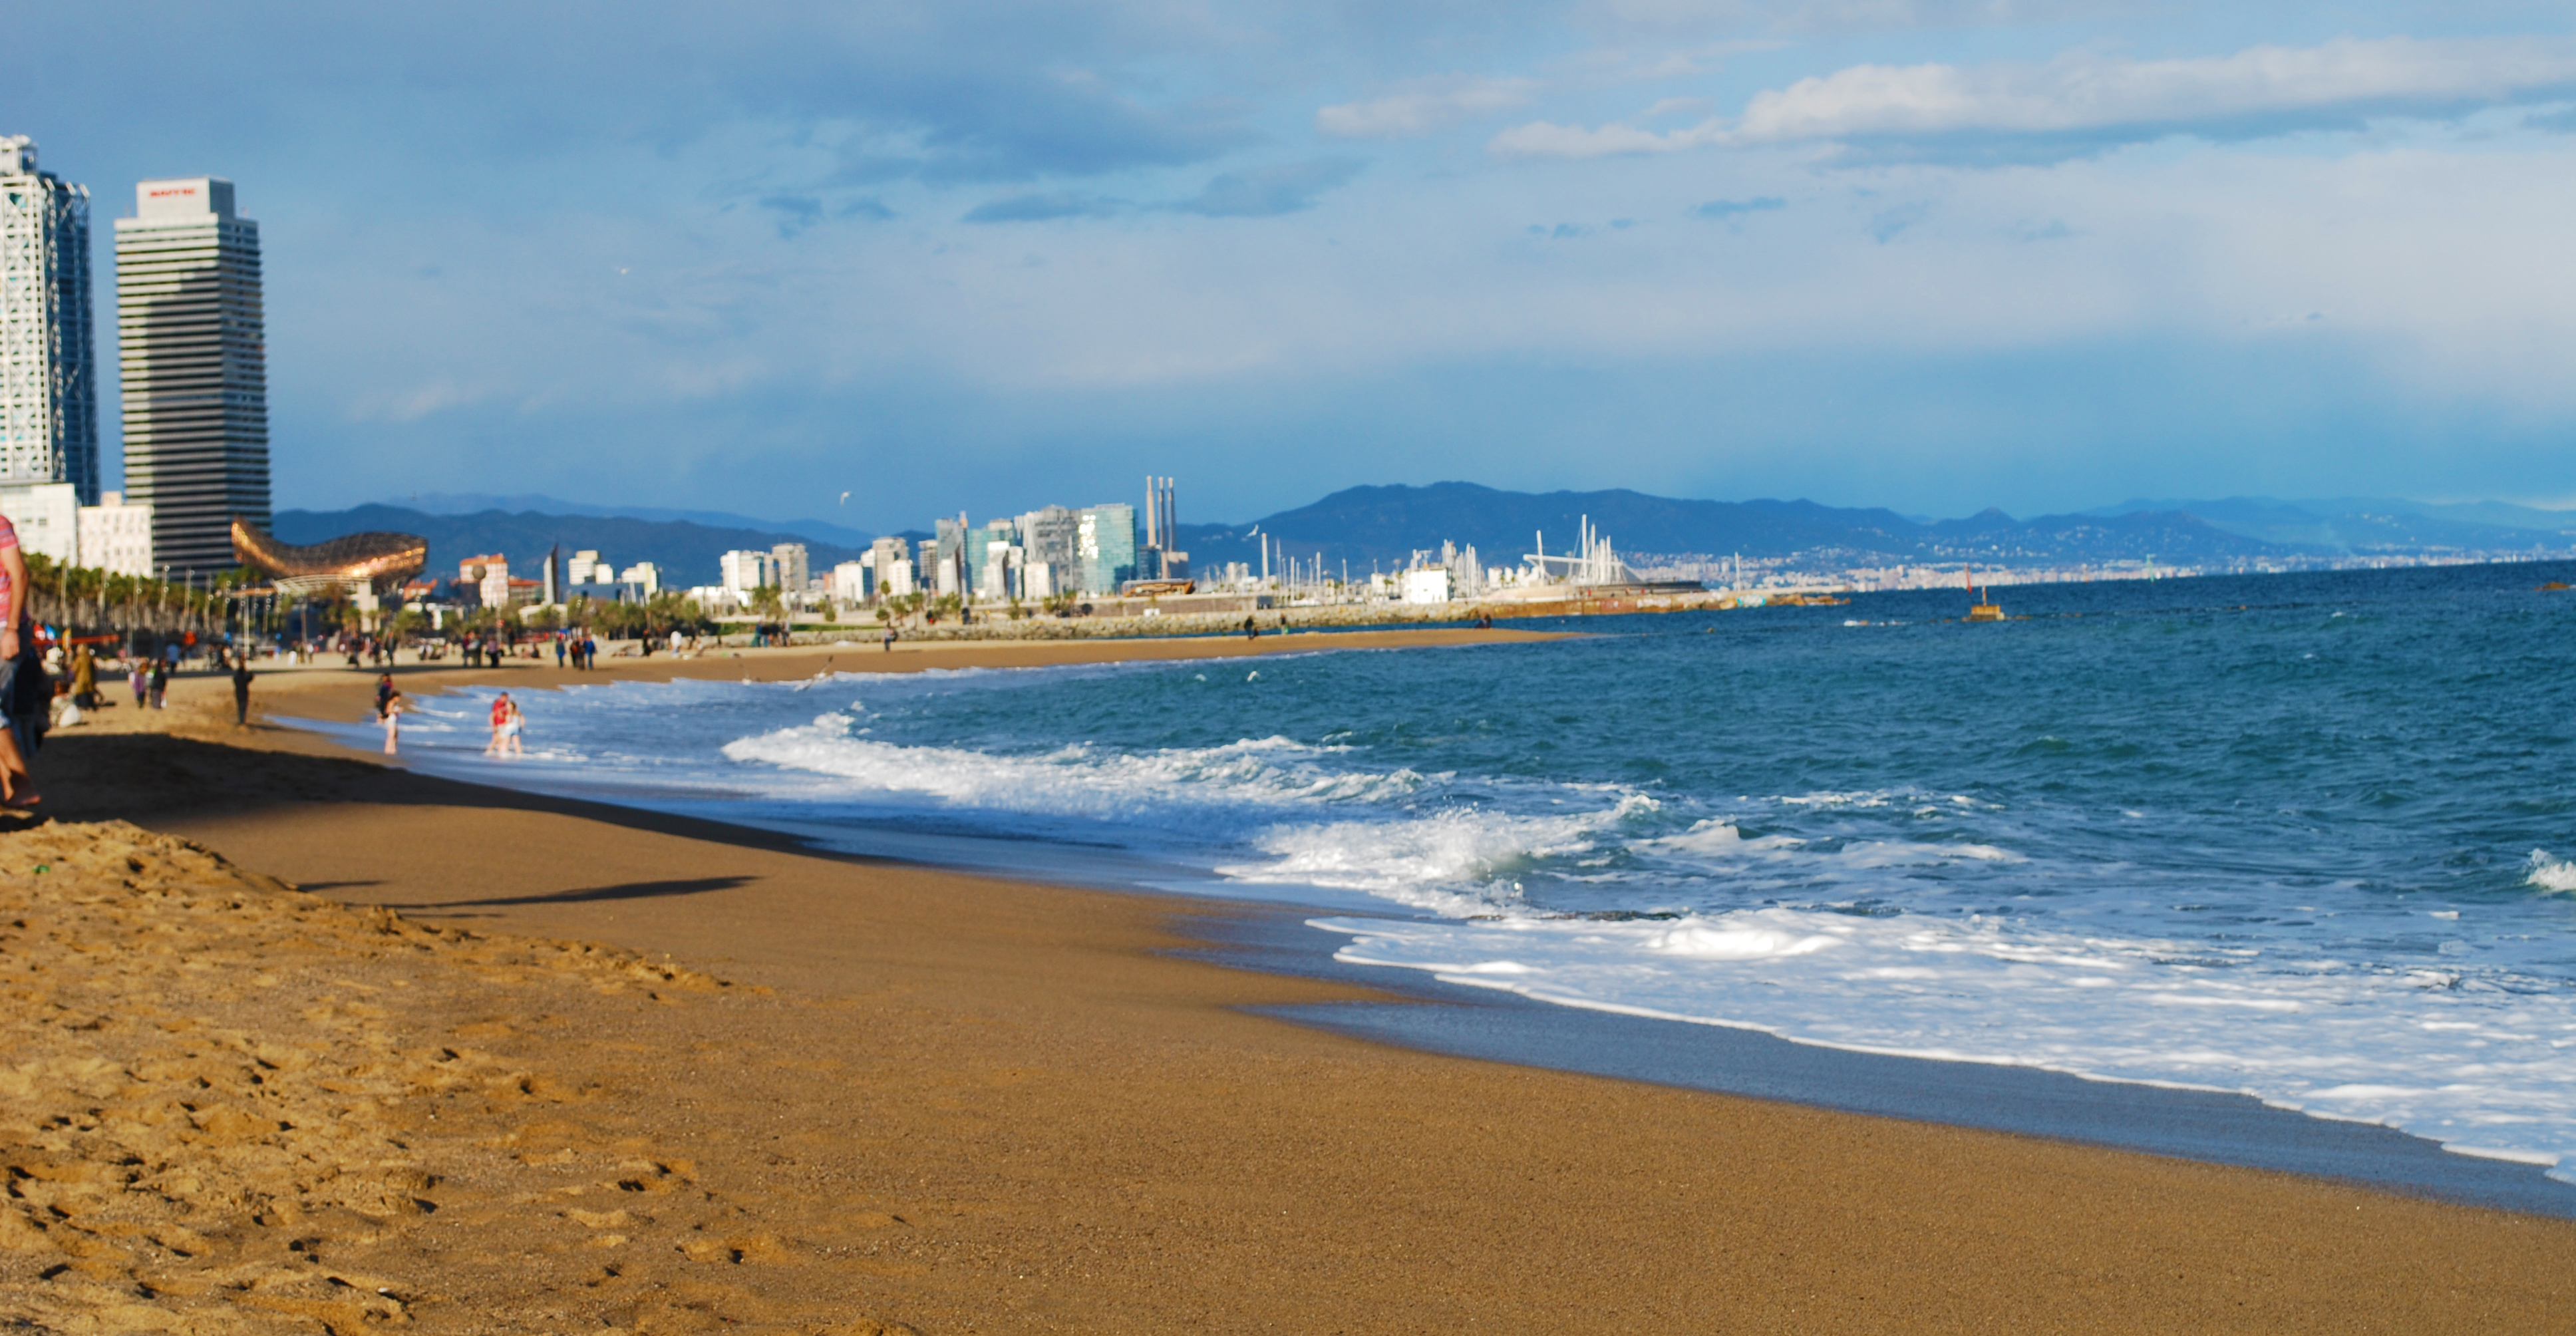 13.11.2015 BEACHES La Barceloneta Beach